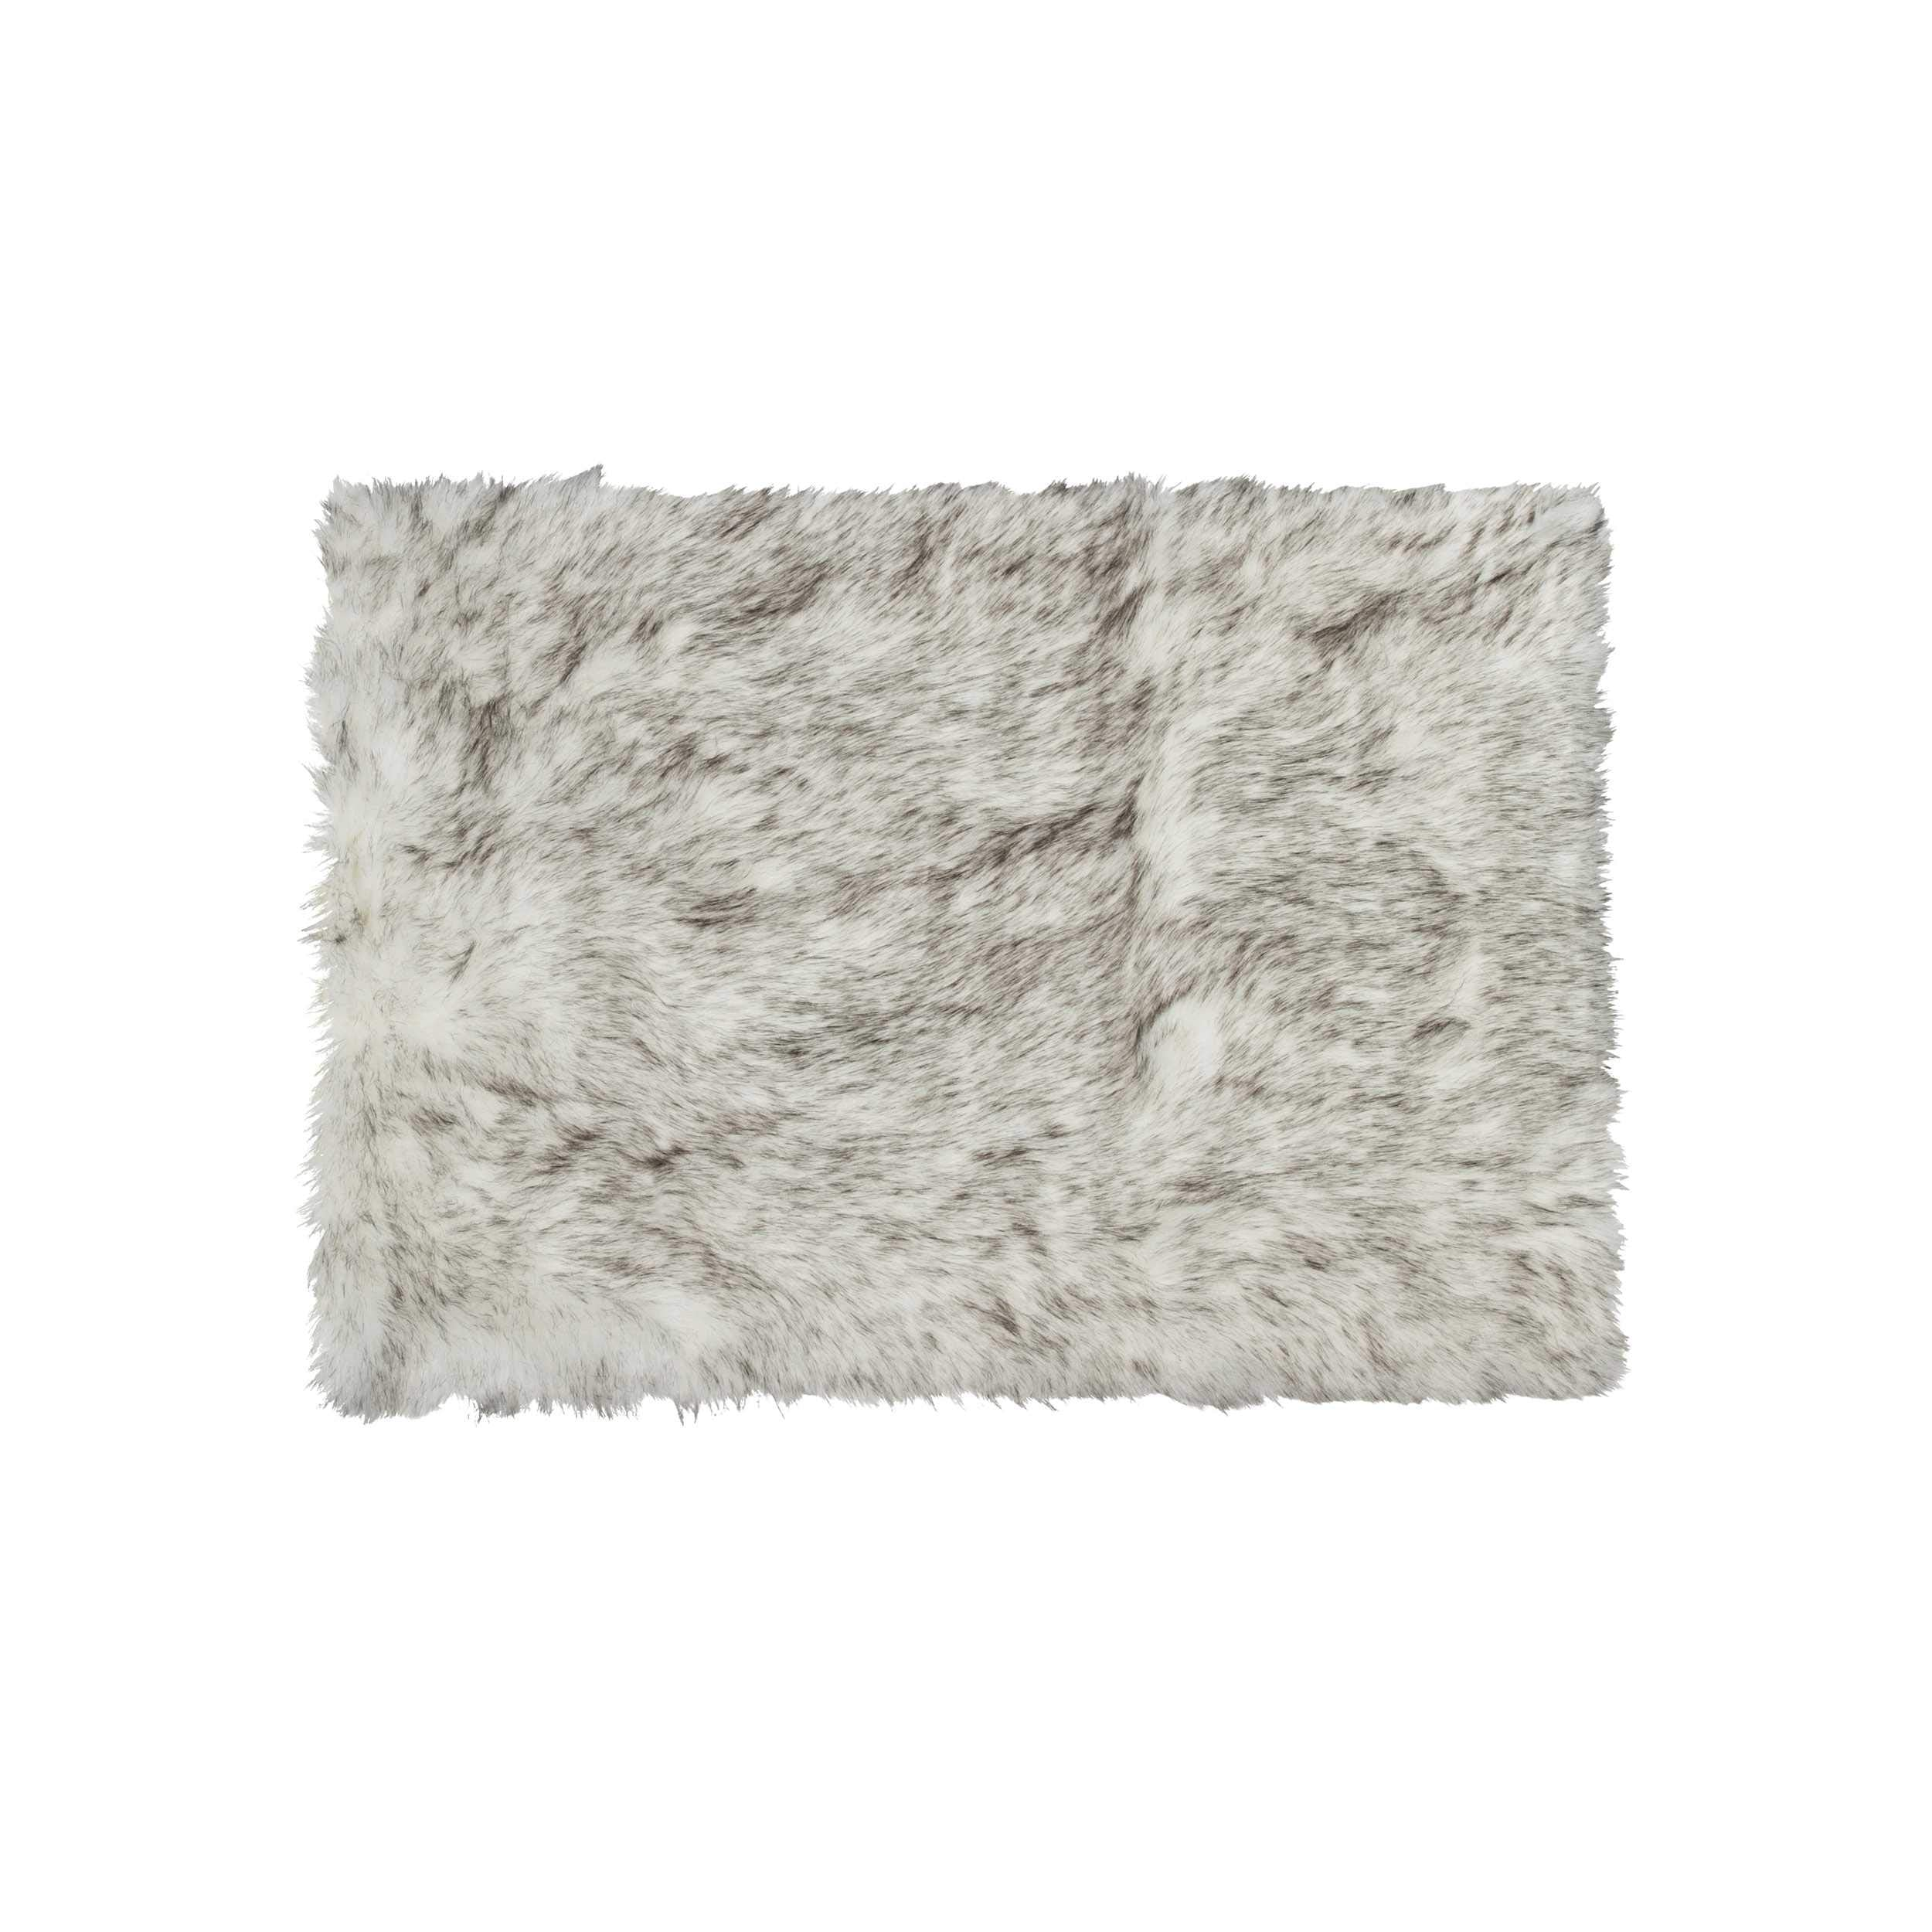 Home Splendor™ Sheepskin Rug Throw 60